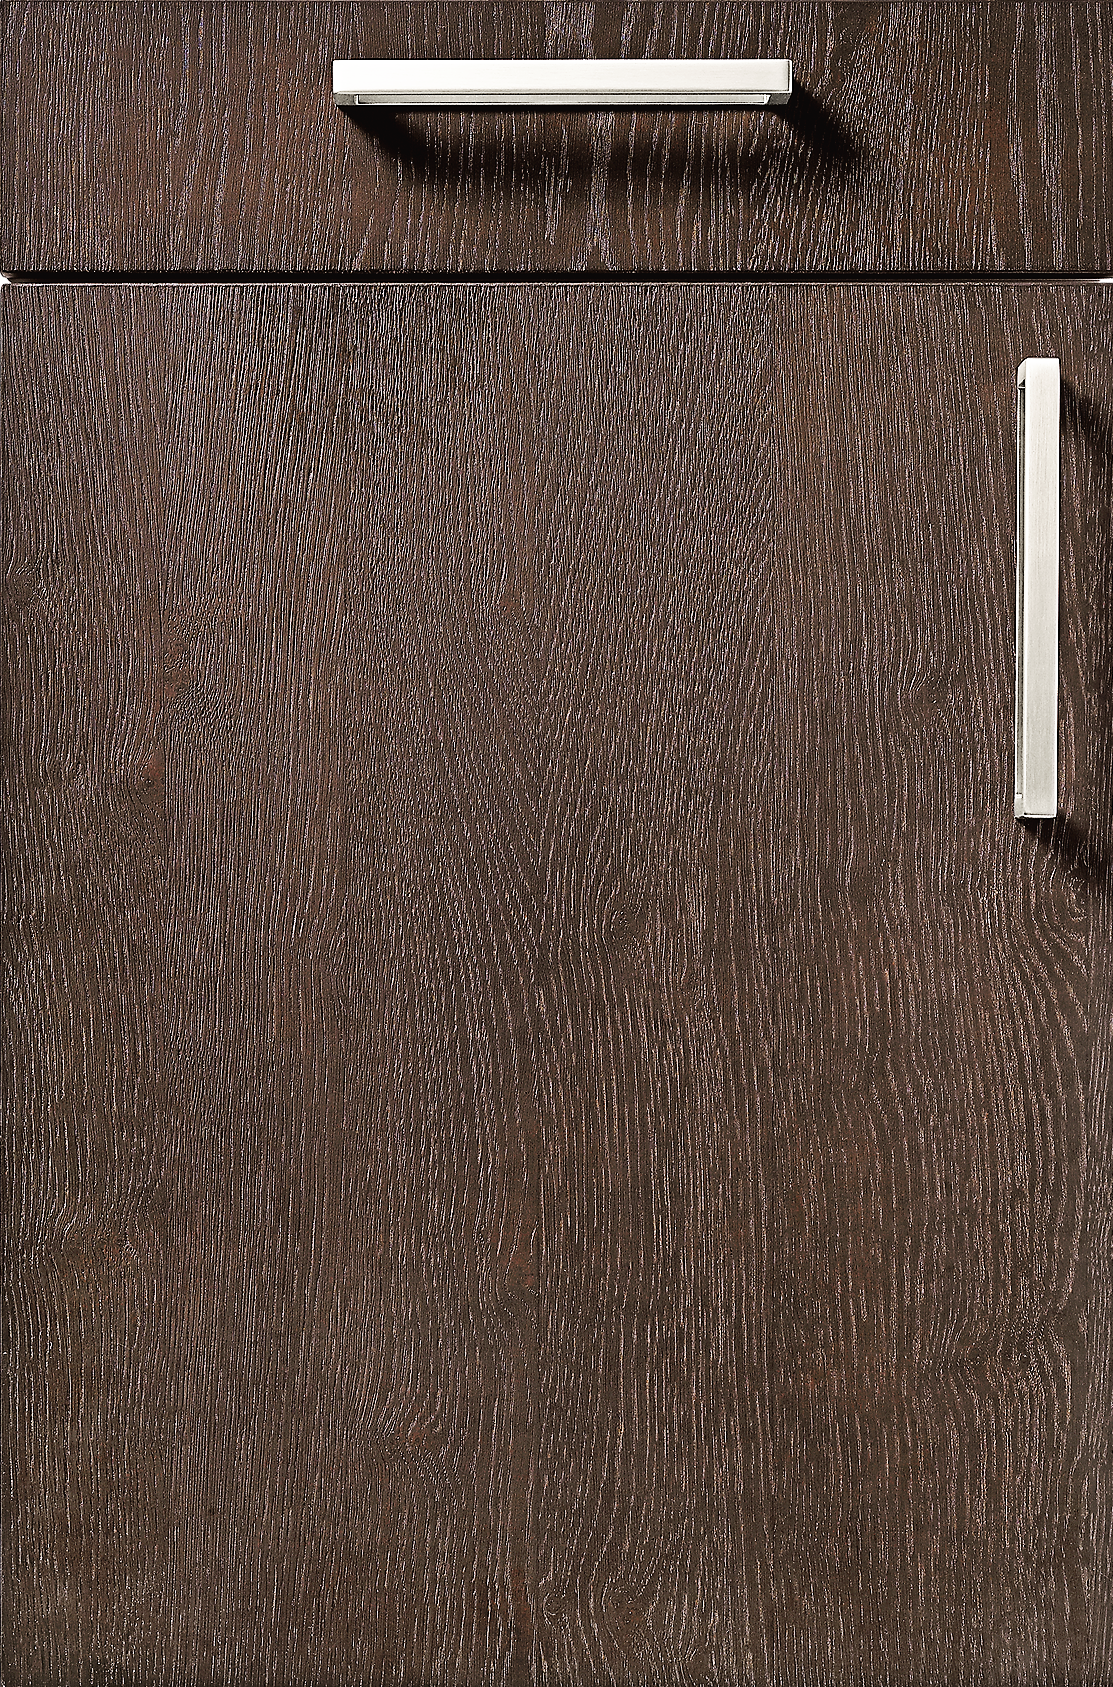 Next 125 NX620 Featured Door Tobacco Knotty Oak Brushed